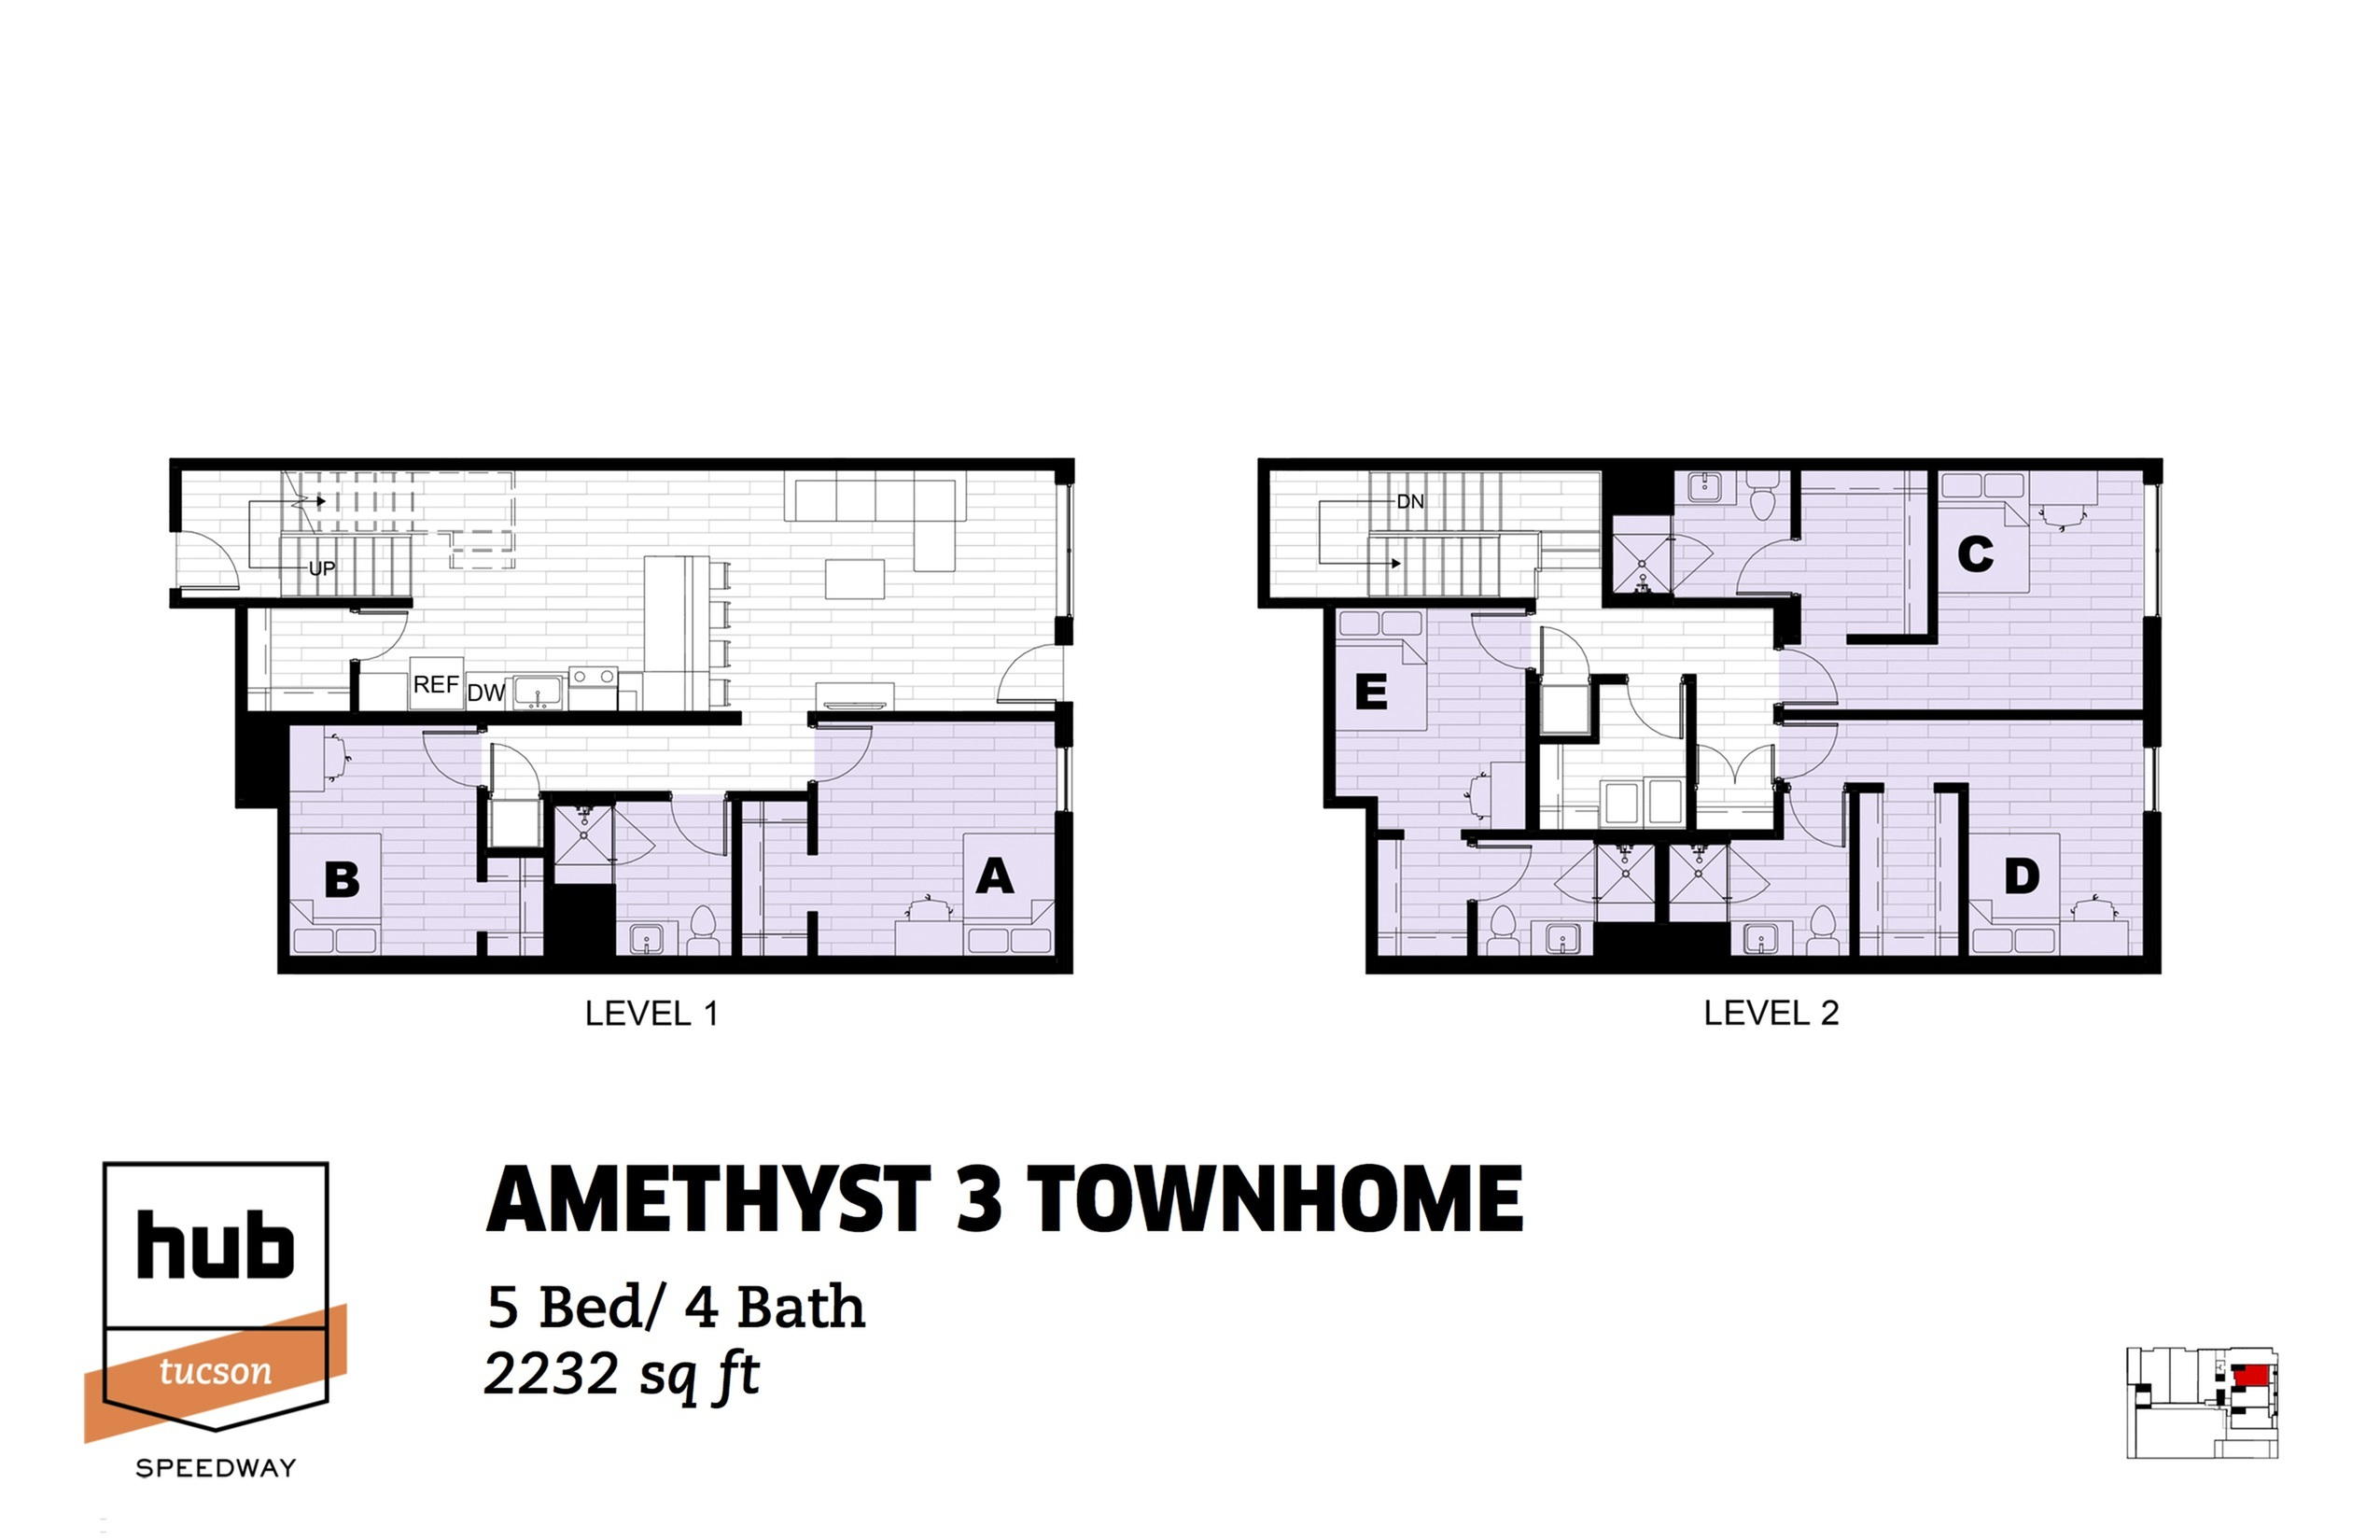 Amethyst 3 Townhome